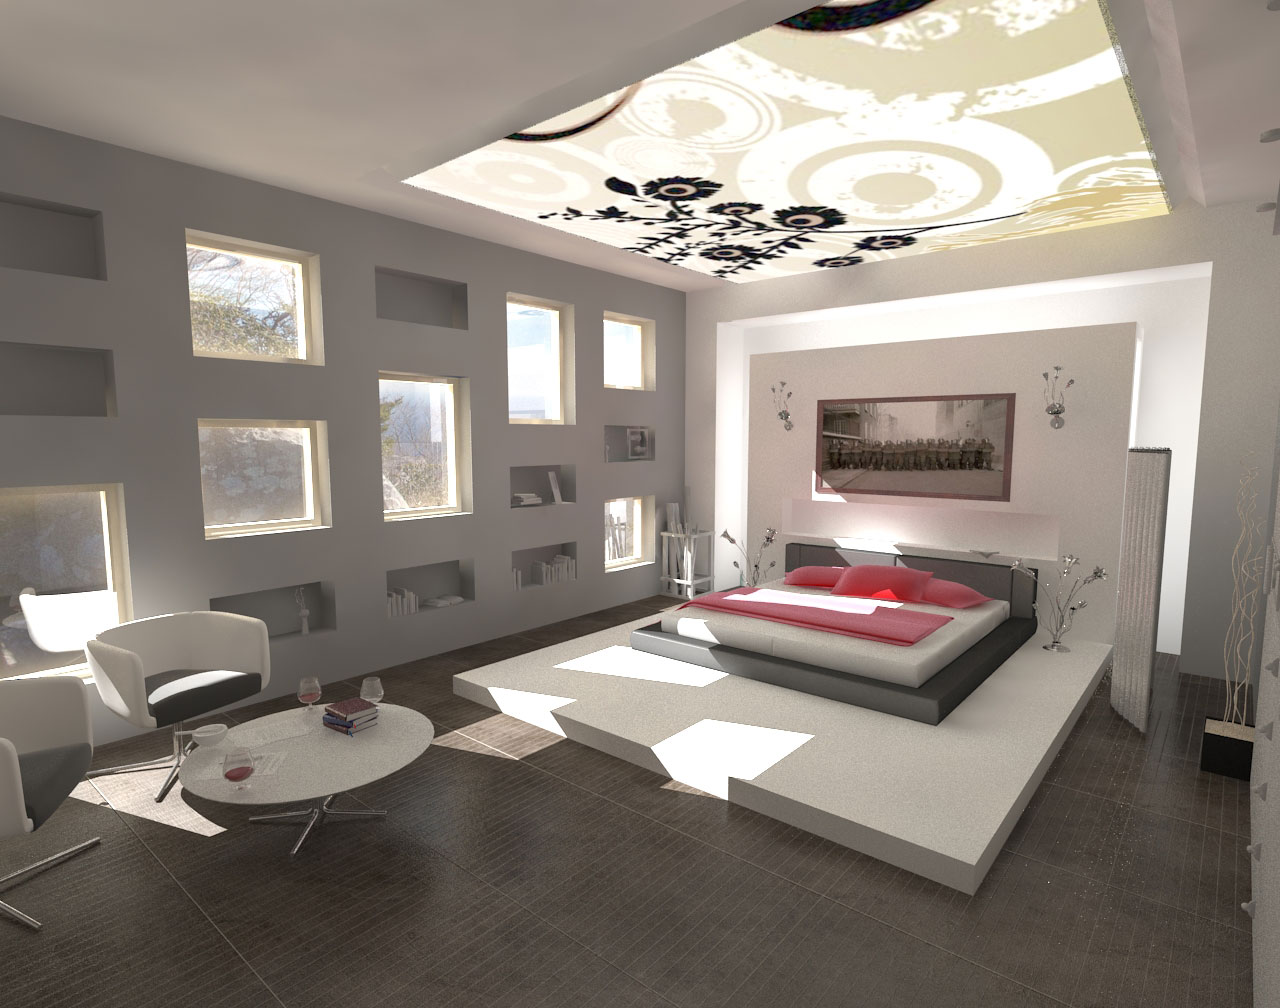 Decorations minimalist design modern bedroom interior for Interior home design bedroom ideas